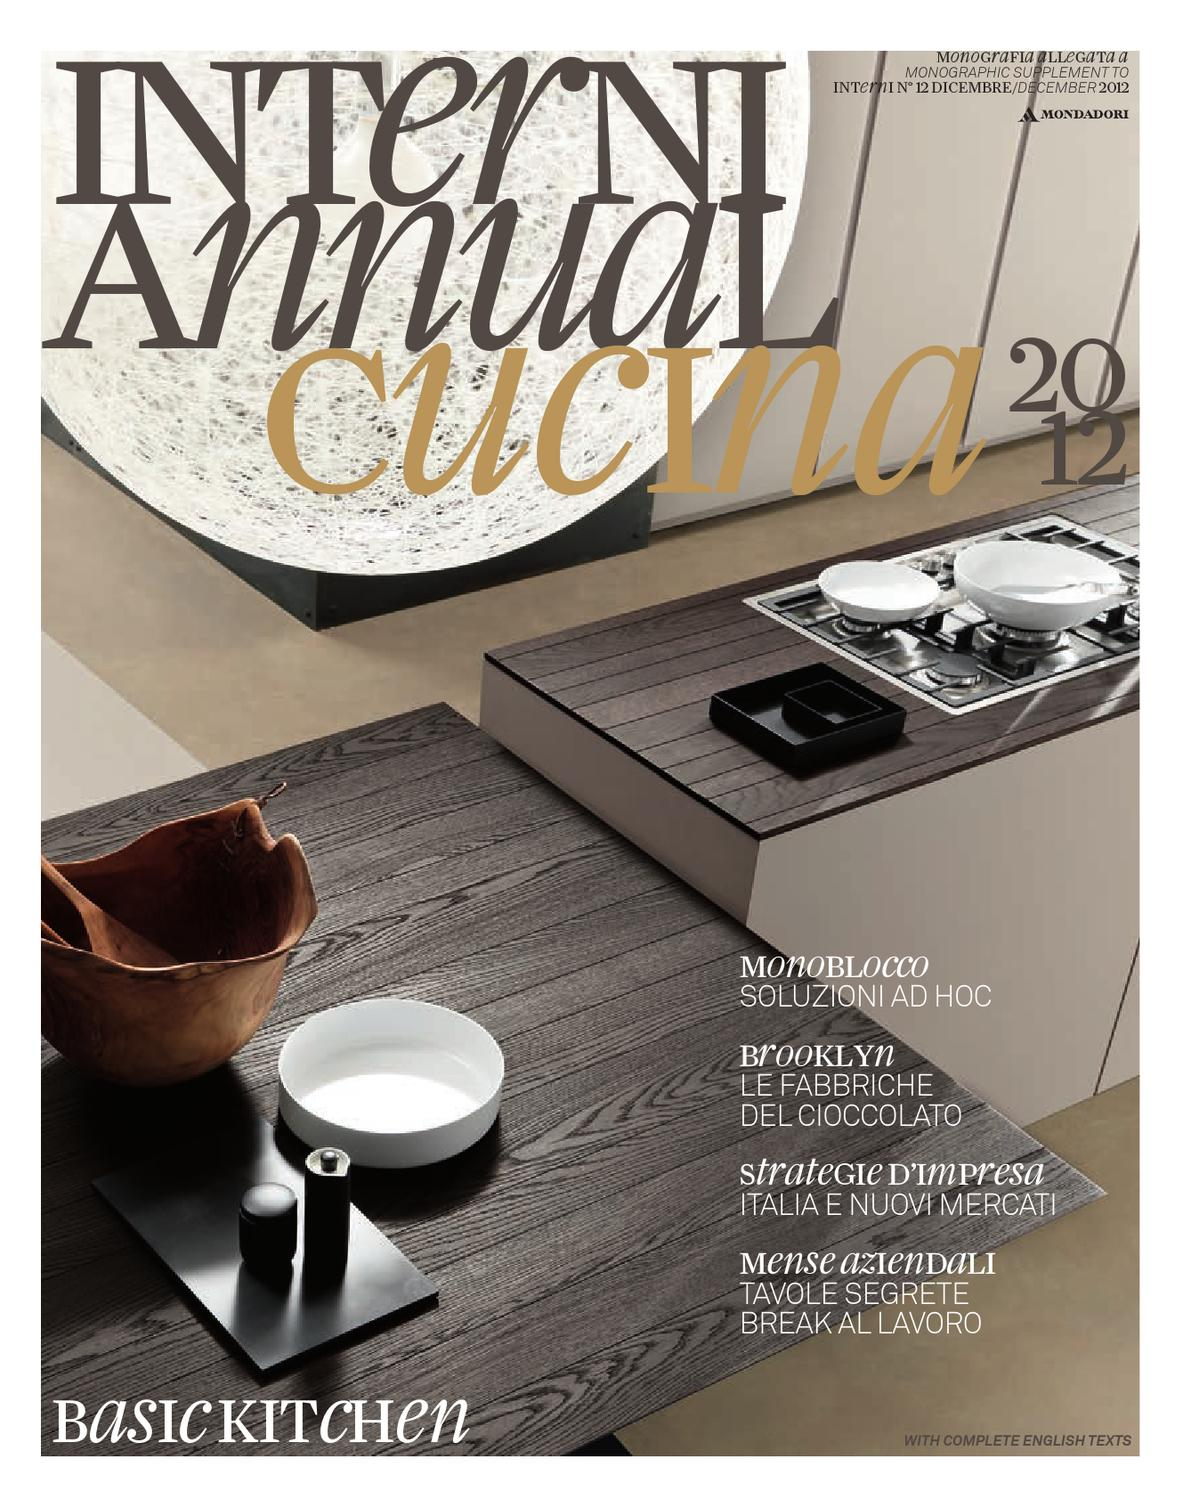 Cucina Rustica Meaning Interni Annual Cucina 2012 By Interni Magazine Issuu